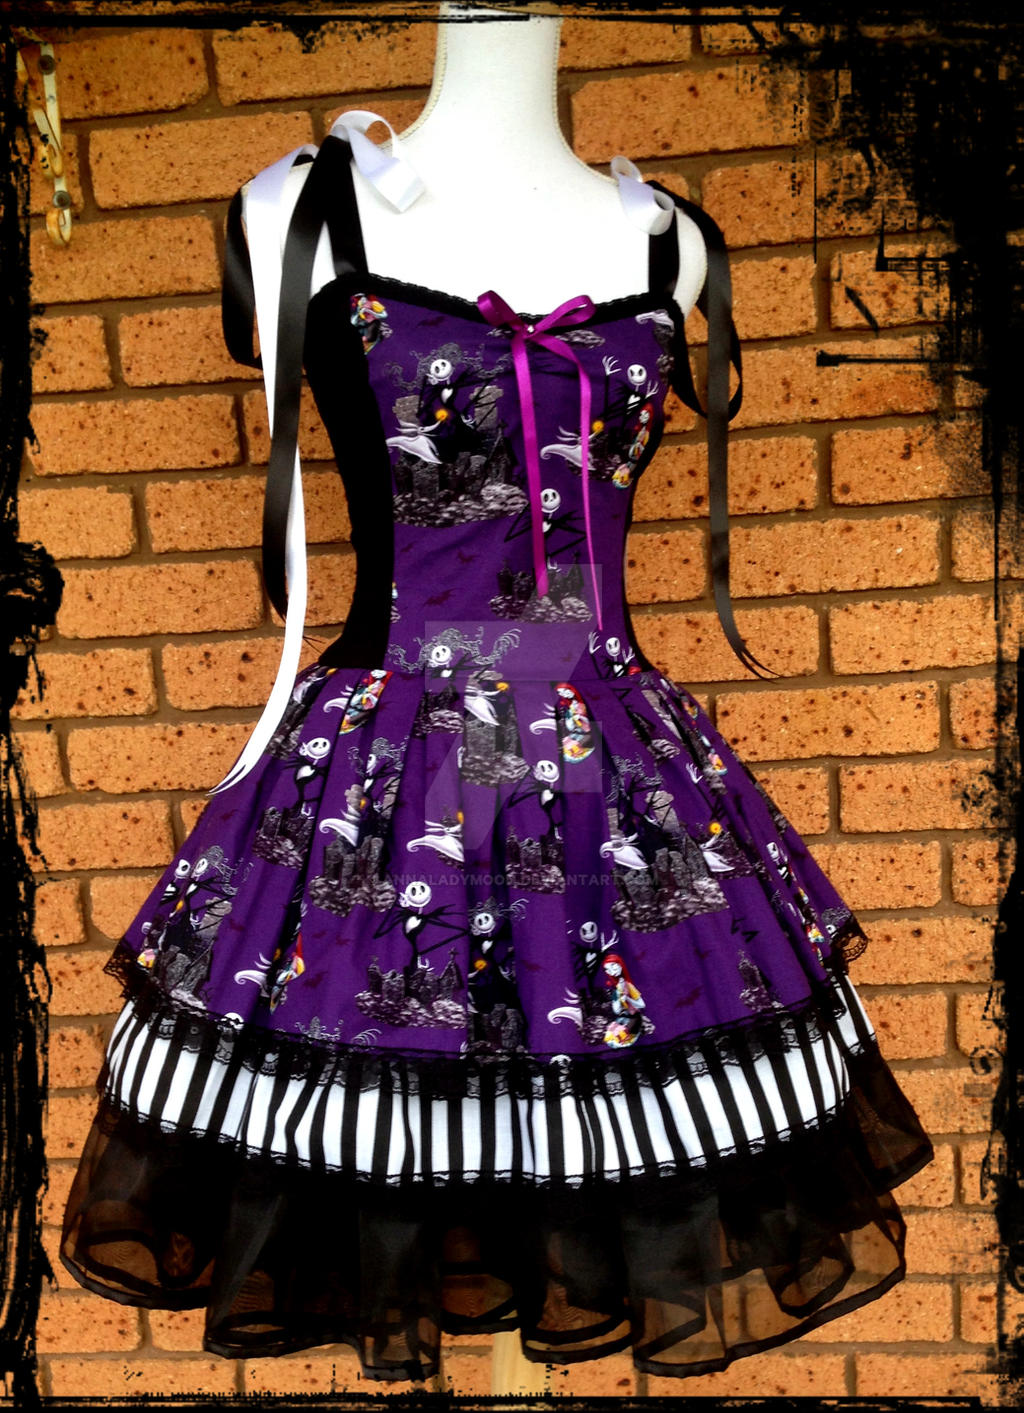 Nightmare Before Christmas Dress by annaladymoon on DeviantArt